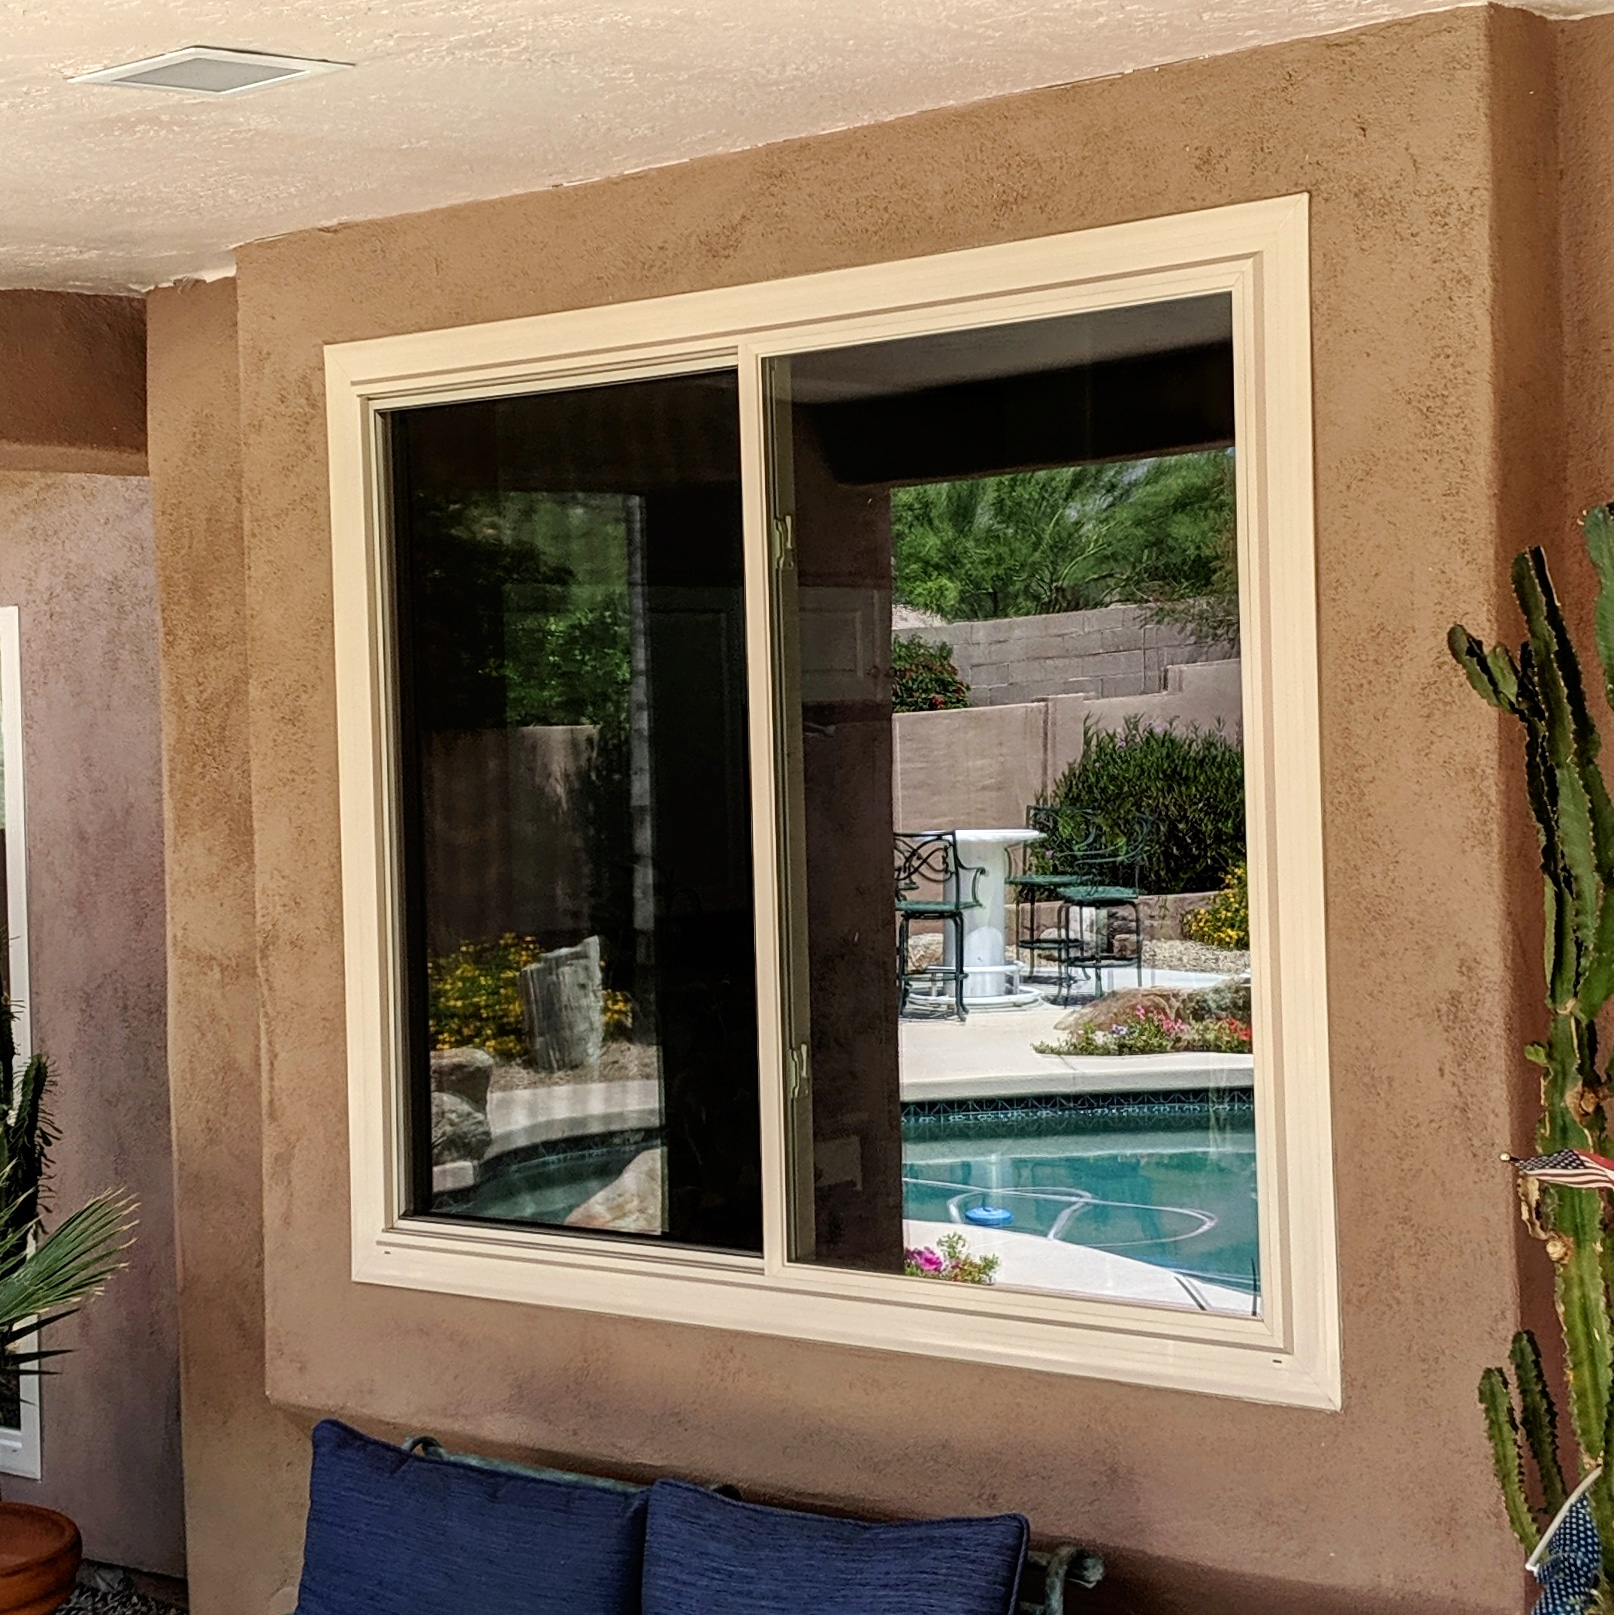 Arizona Window and Door in Scottsdale and Tucson showing home sliding window